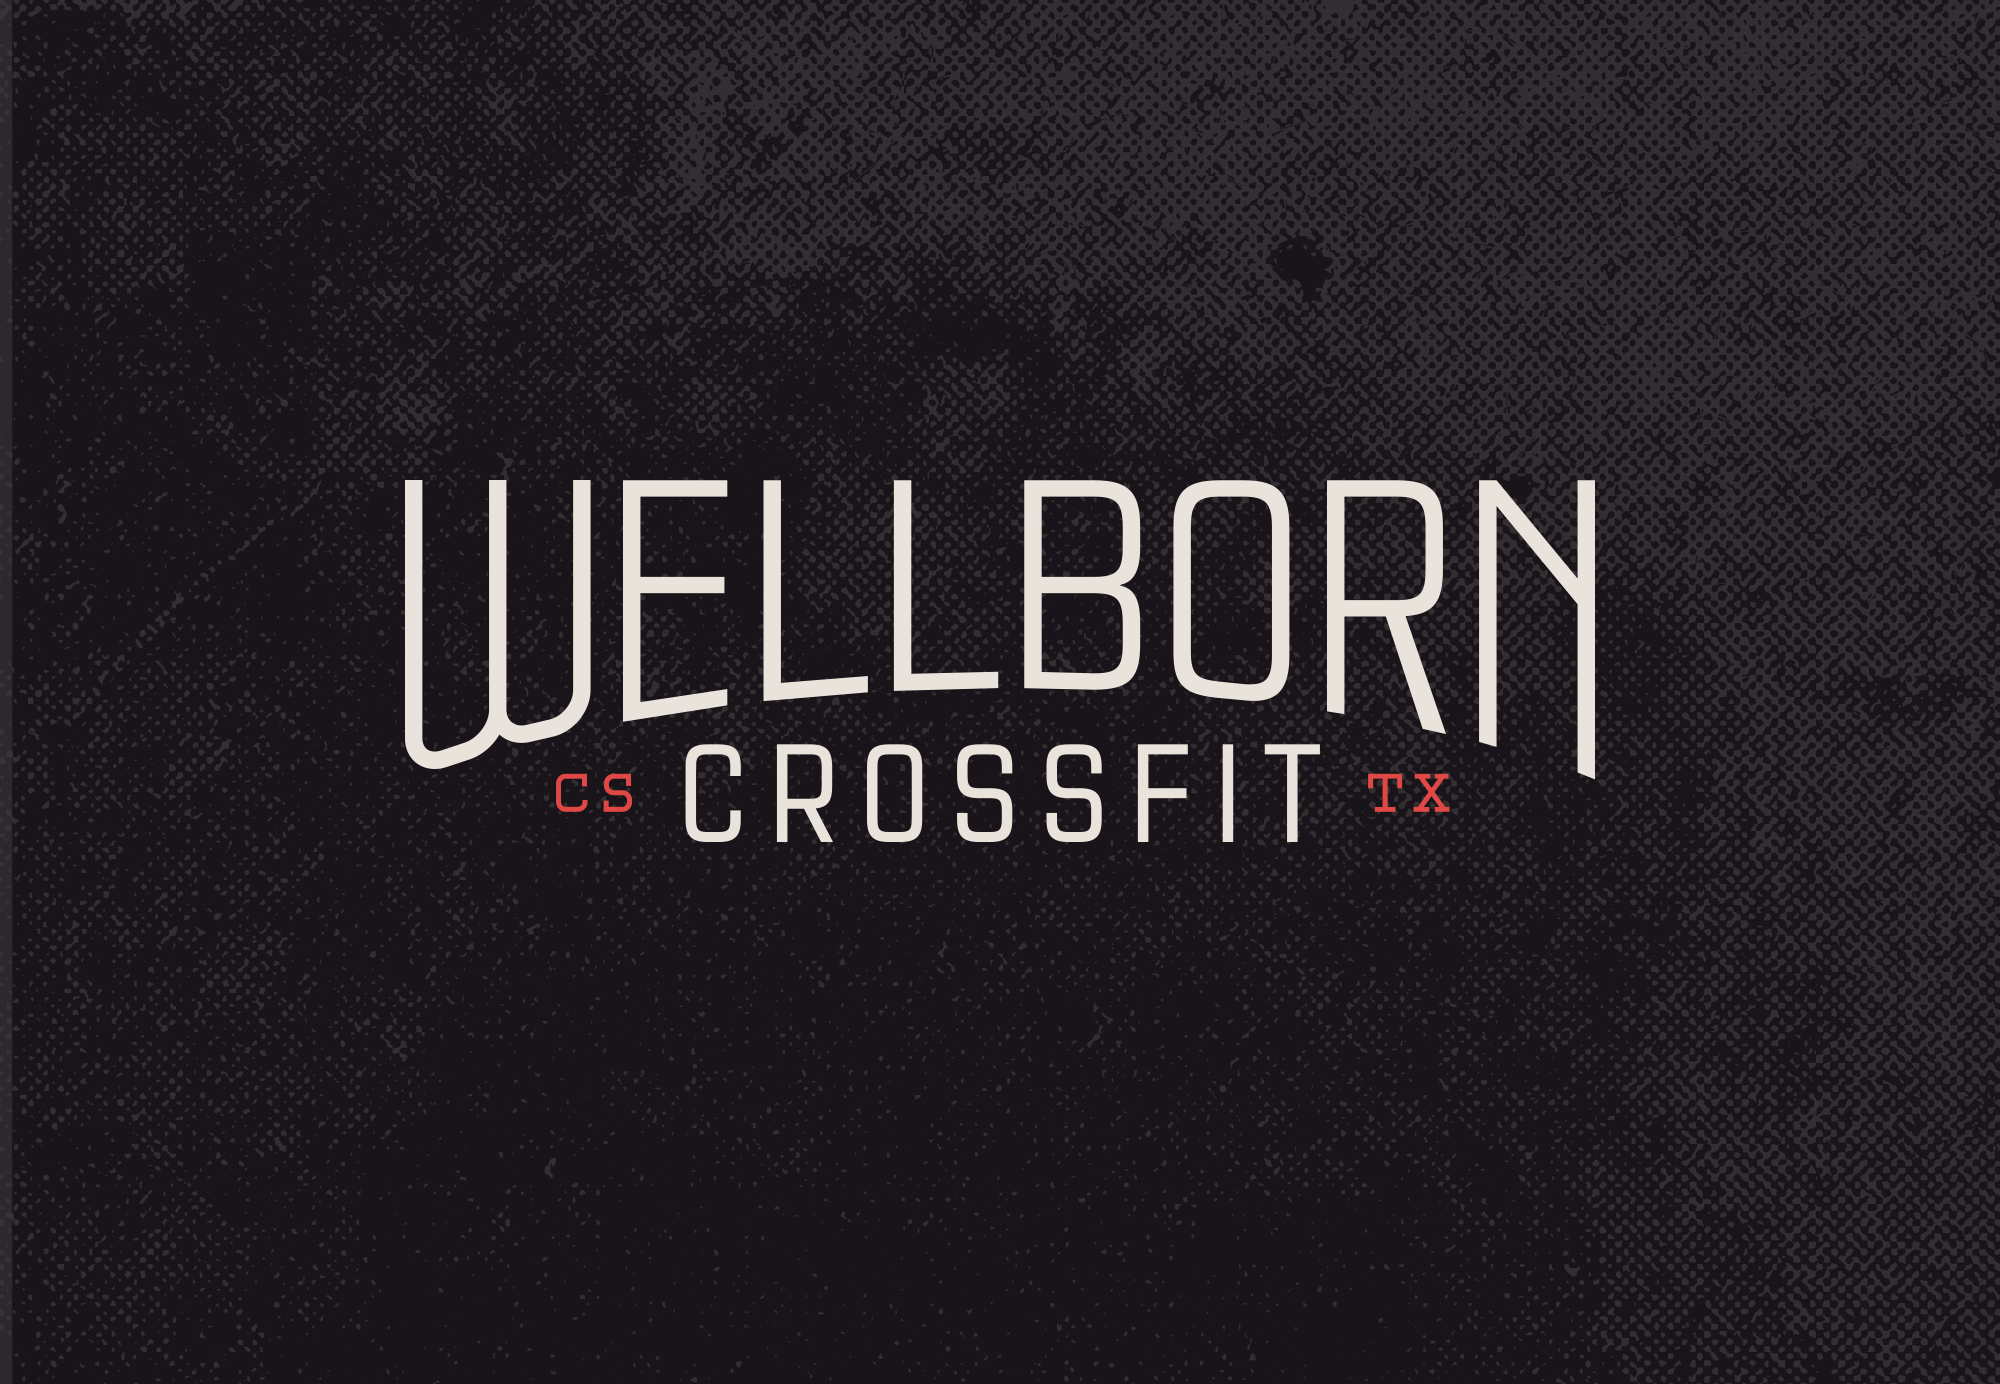 wellborn_logo.png